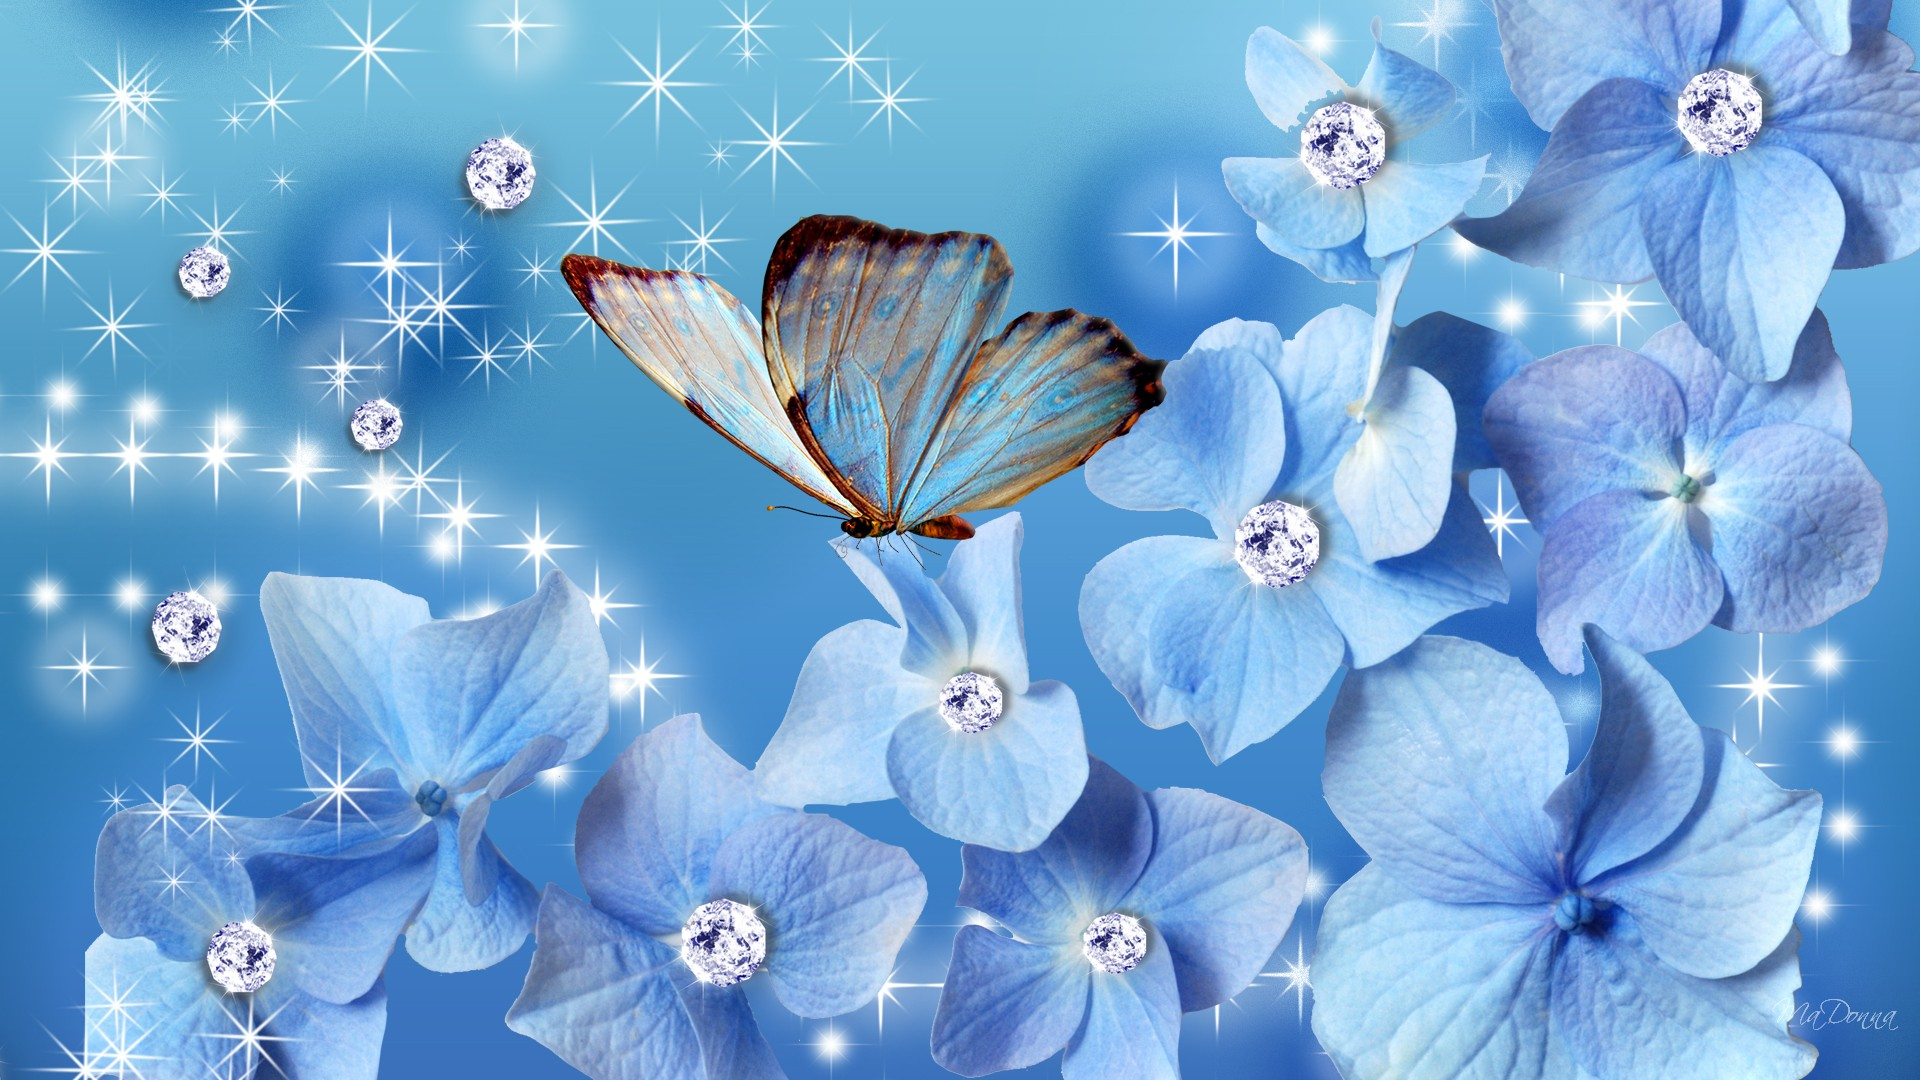 Blue Butterfly Hd Desktop Wallpaper Widescreen High Definition